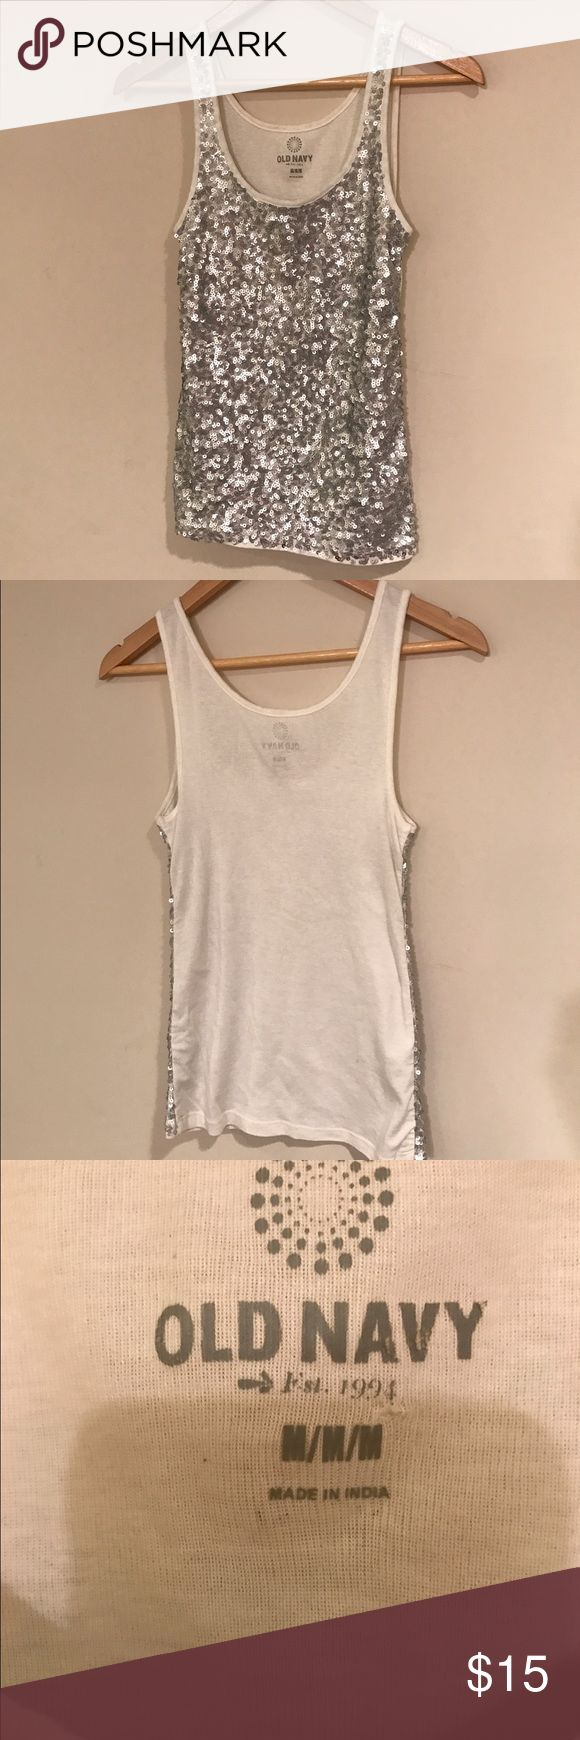 Sequin Tank top Fun, white sequin tank top.  Super comfy and cute! Worn twice with some fading of the tag information seen in picture.   No trades, firm price.  **Bundle and Save💵!** Old Navy Tops Tank Tops